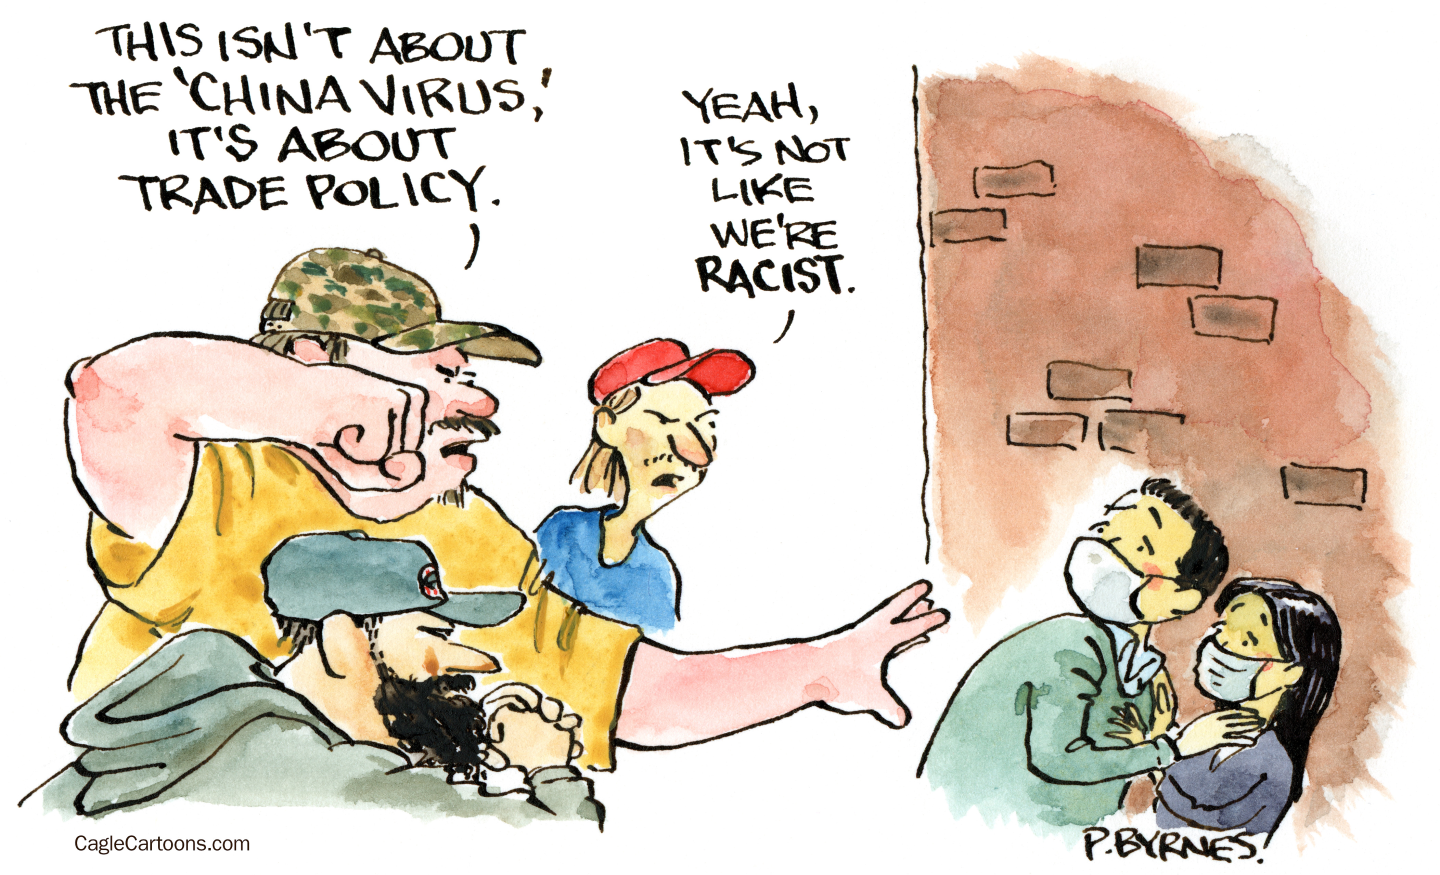 Republicans stoke Anti-Asian racism for political purposes.